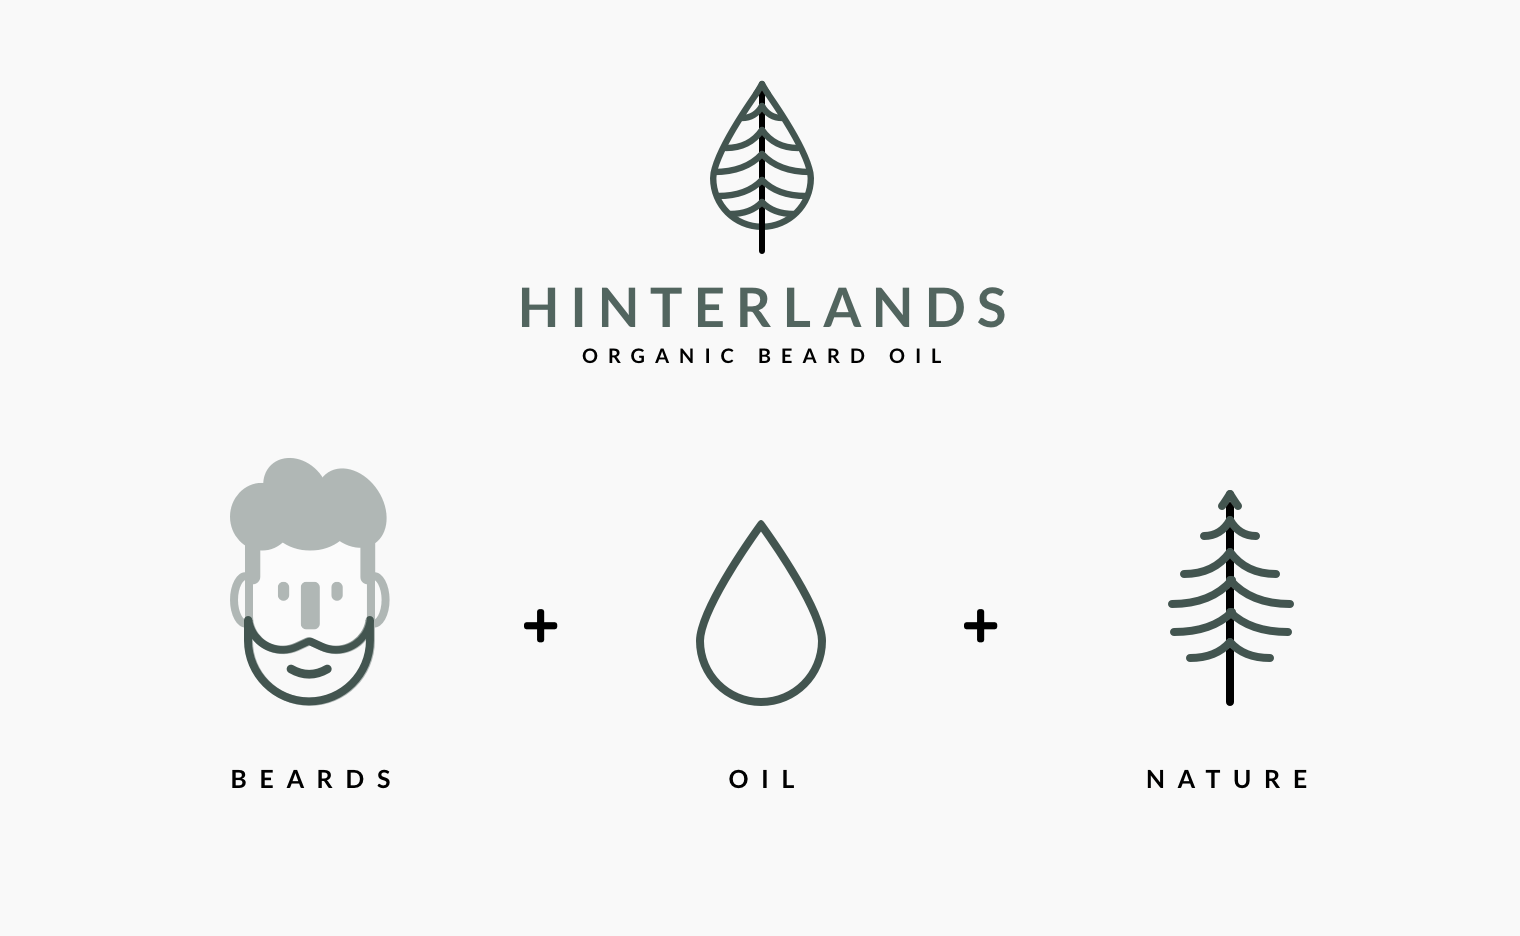 Hinterlands organic beard oil branding